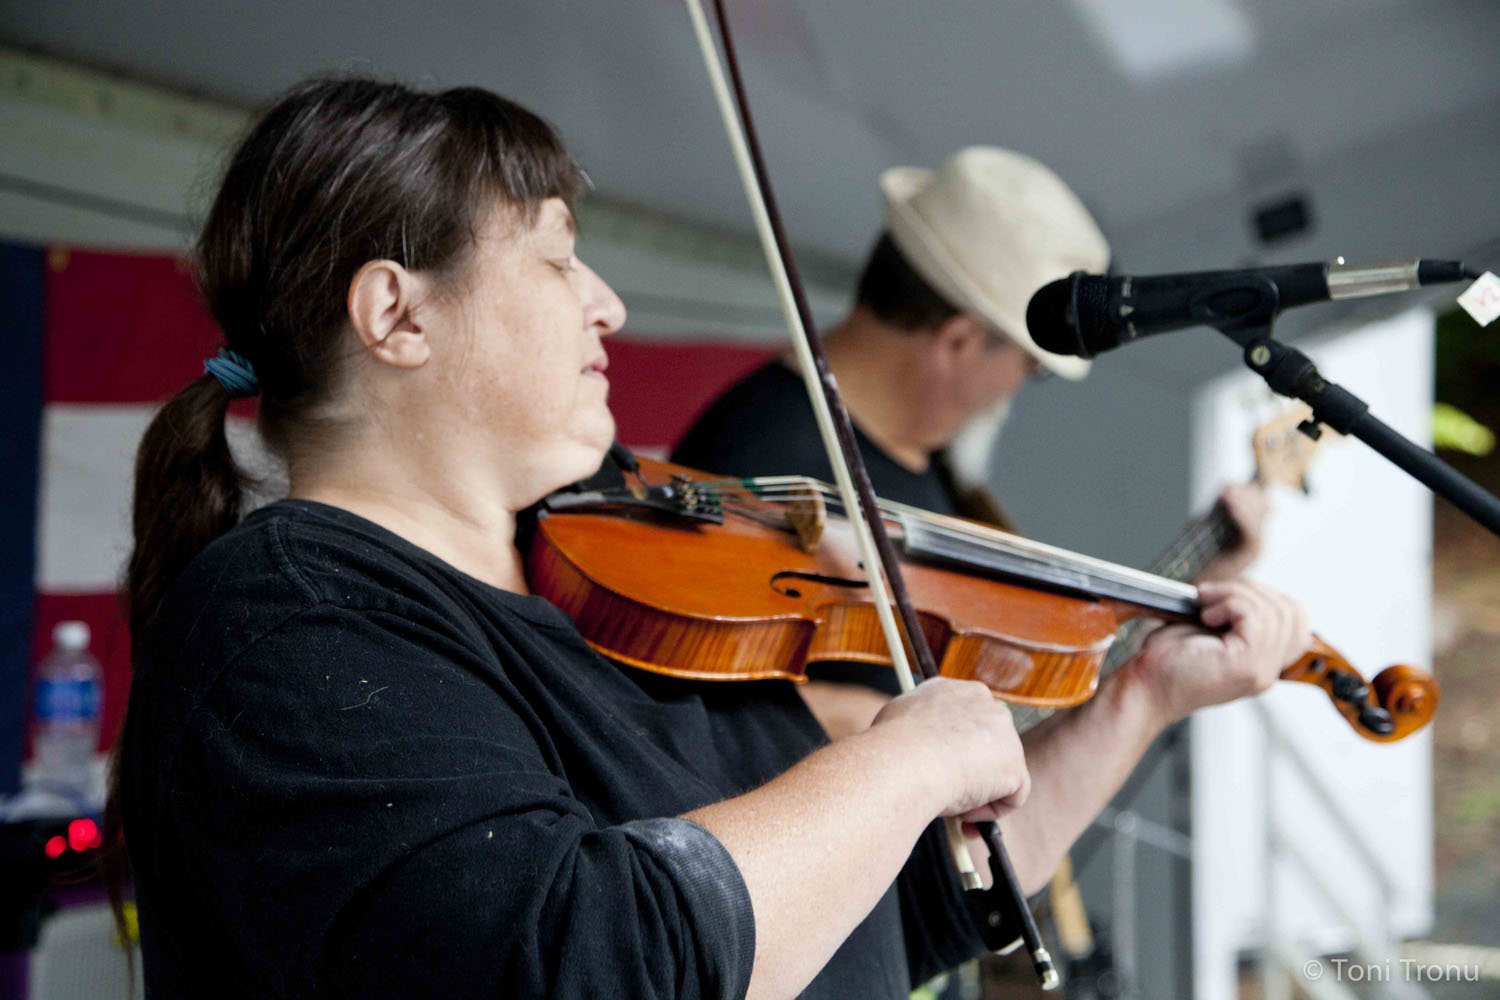 debbie-gitlin-fiddle-player-stained-glass-canoe-5-piece-band-perfomance-stokes-arts-council-an-andrea-templon-band-dragonfly.jpg